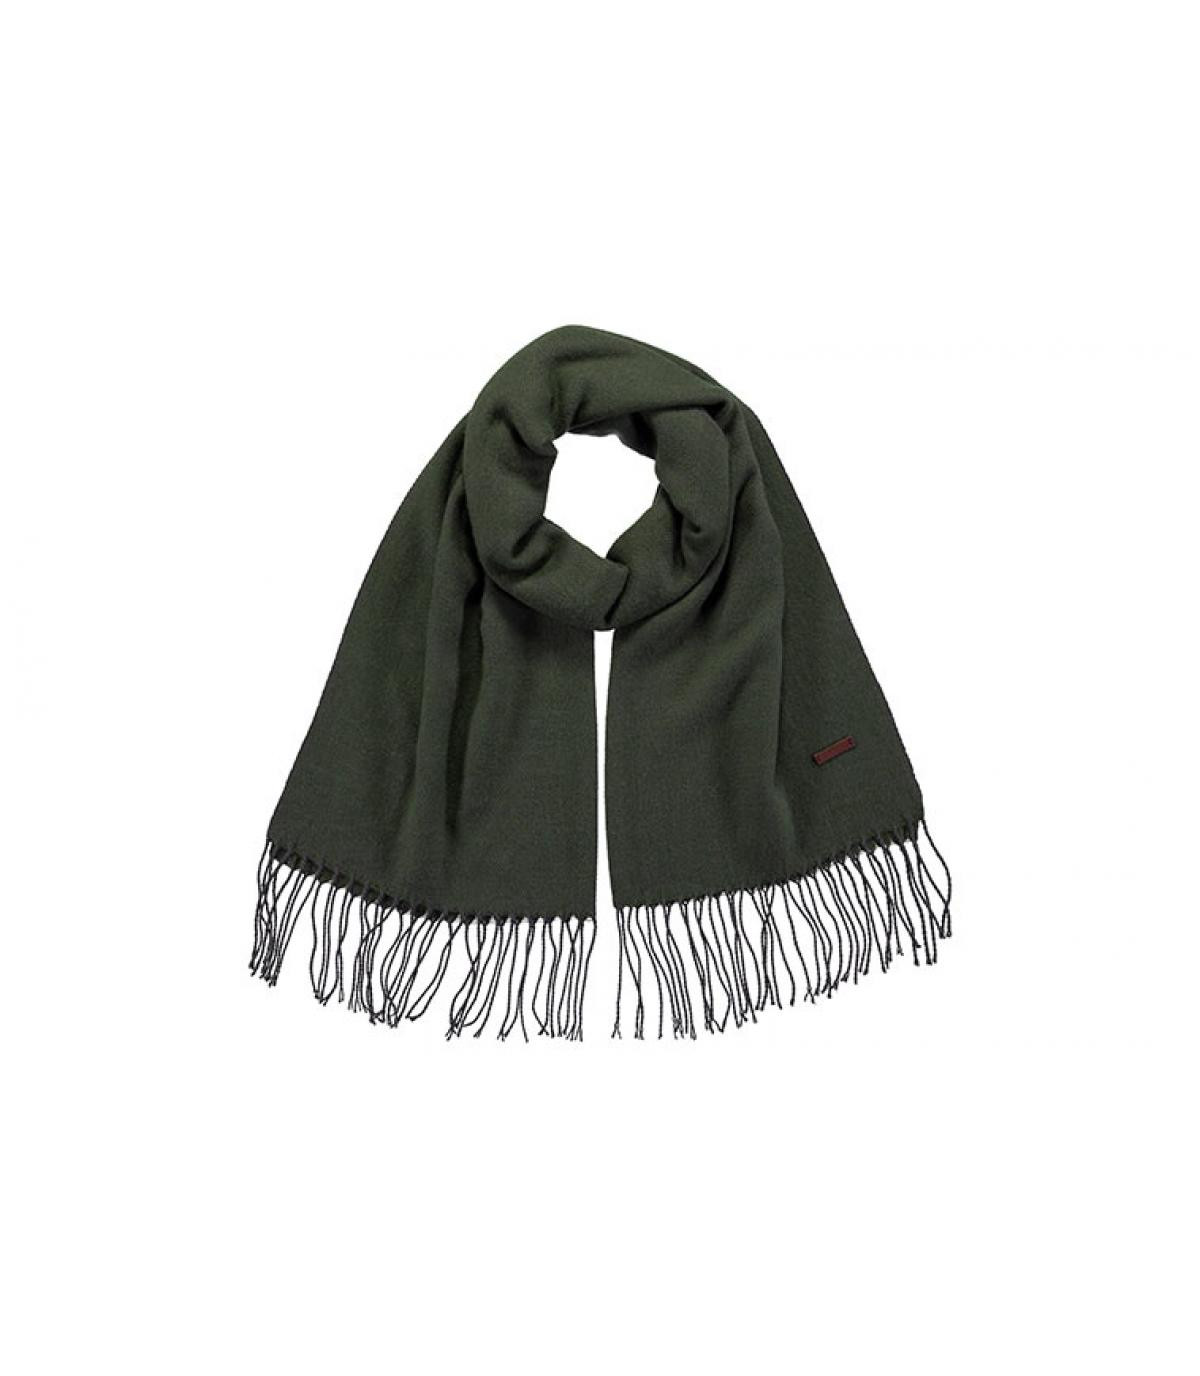 Details Soho Scarf army - afbeeling 2